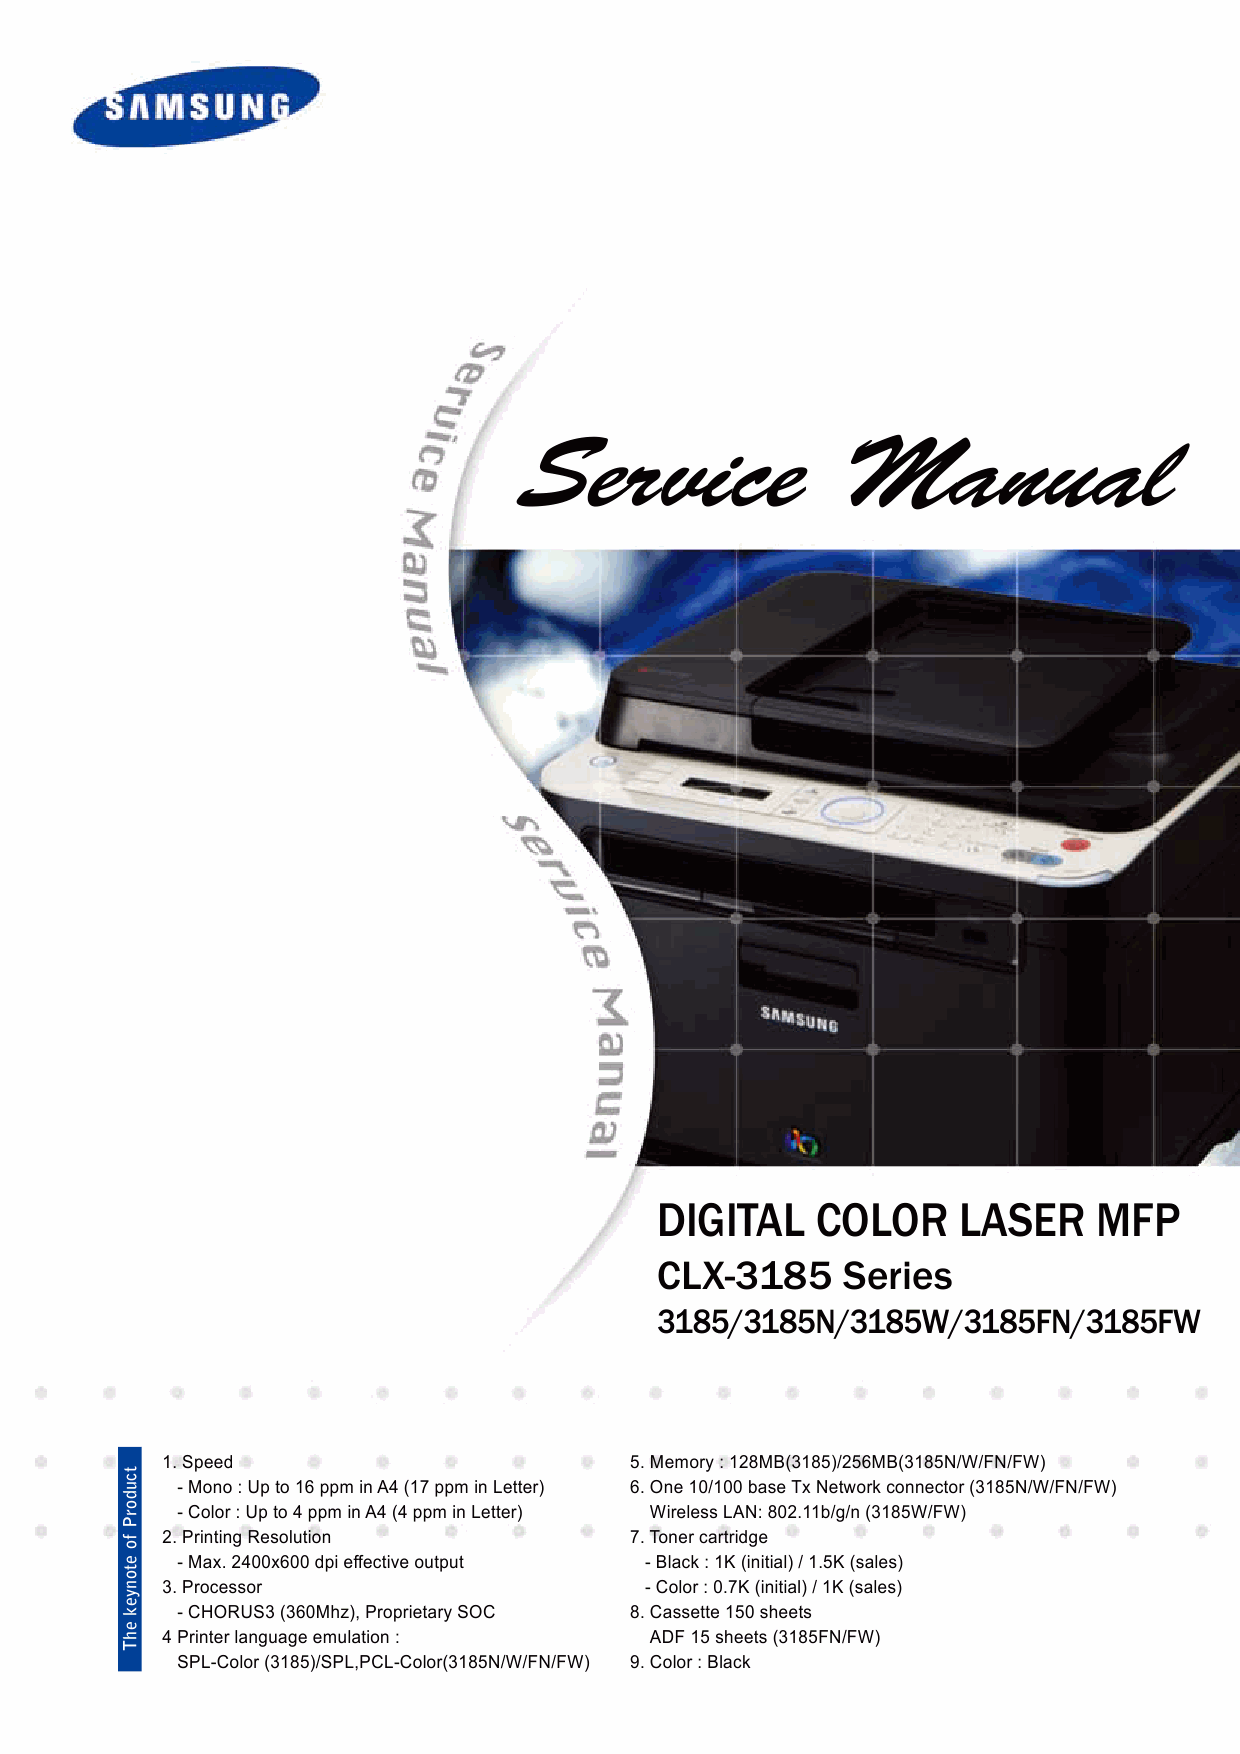 Samsung Digital-Color-Laser-MFP CLX-3185 Series N W FN FW Parts and Service Manual-1